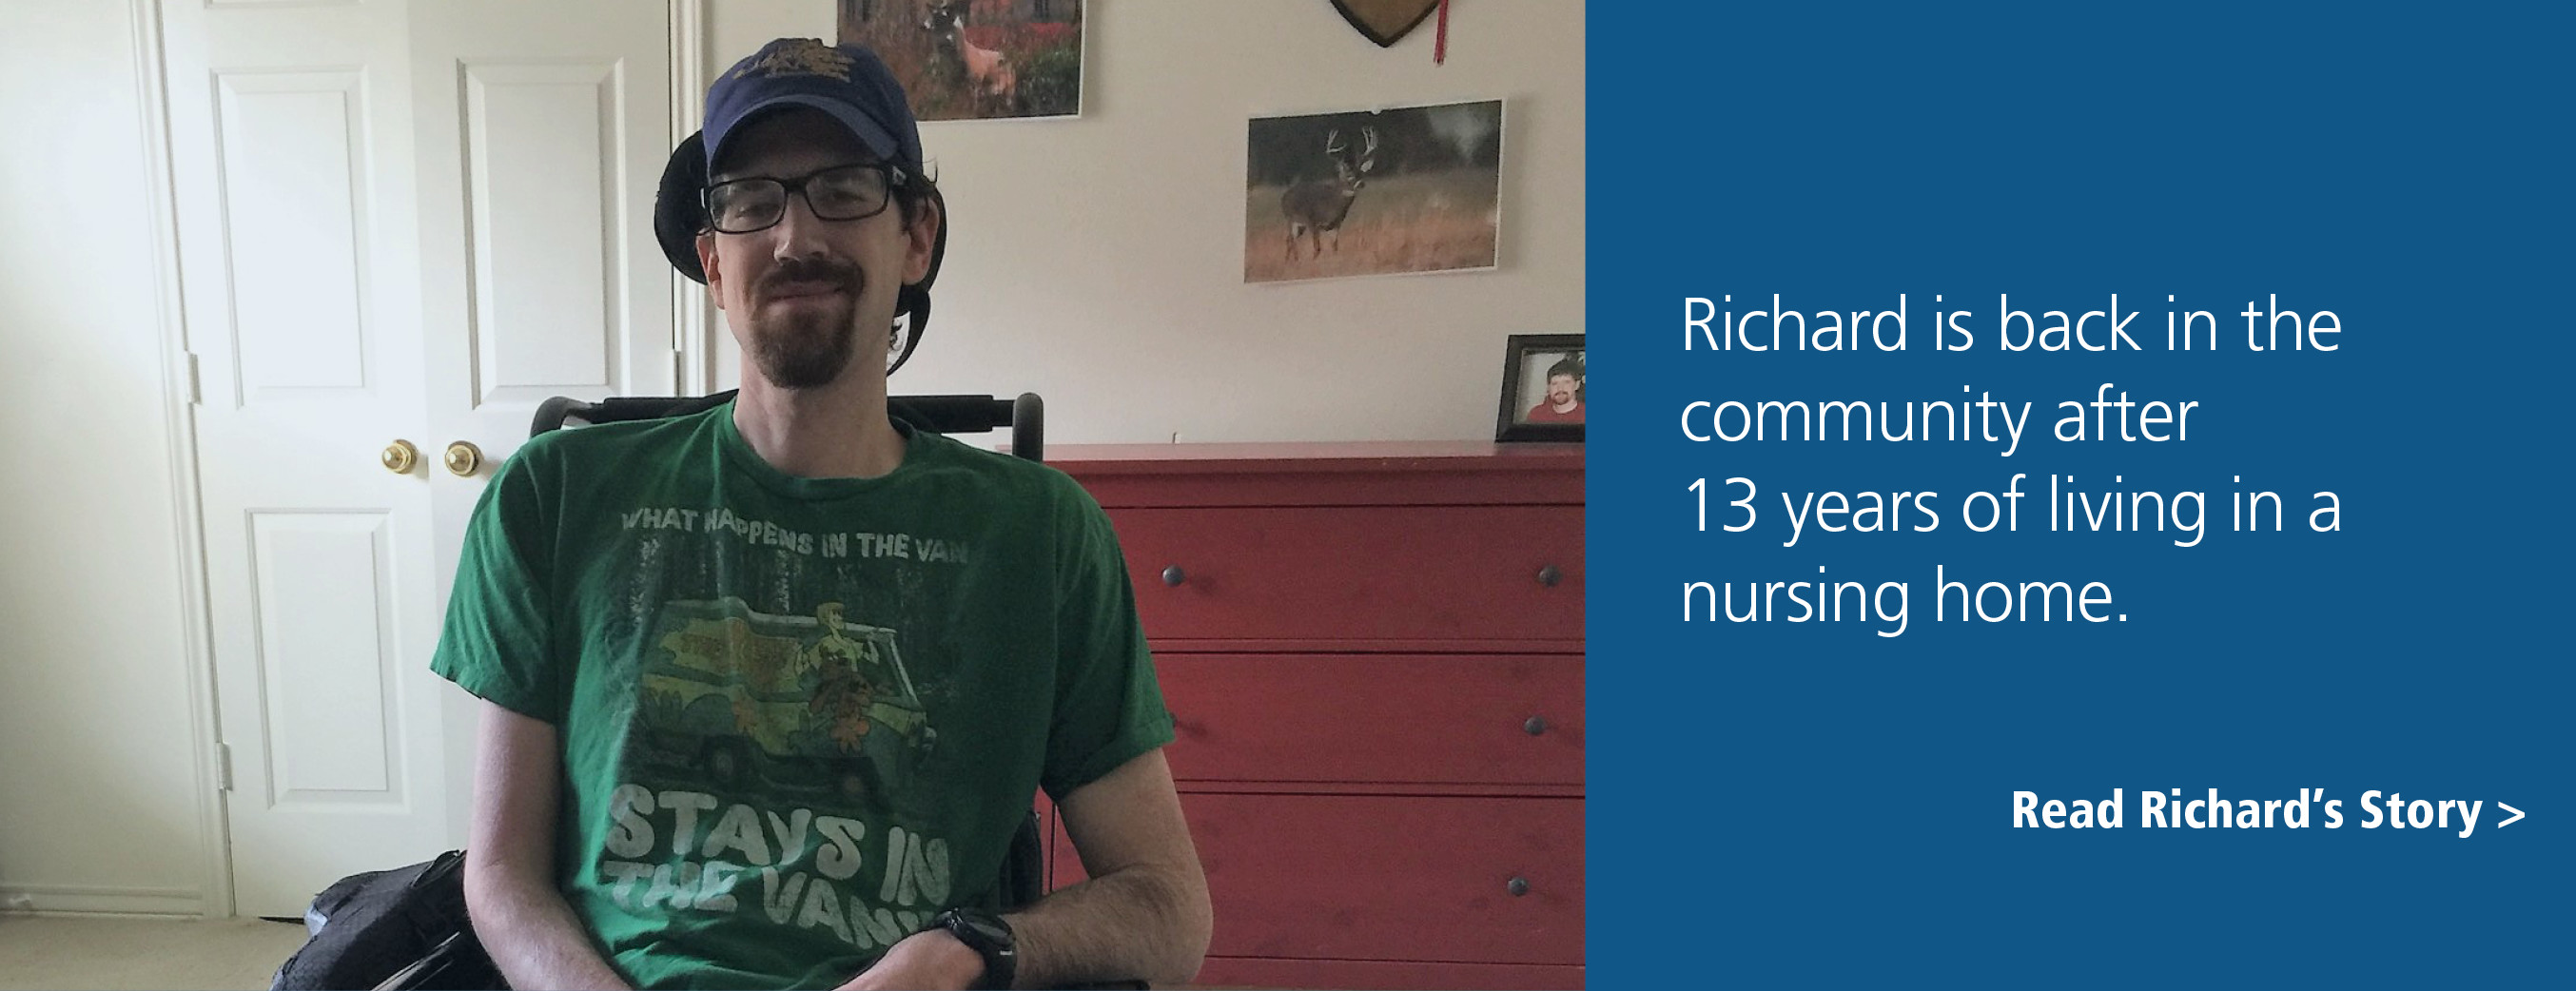 Richard is back in the communityafter 13 years of living in a nursing home.